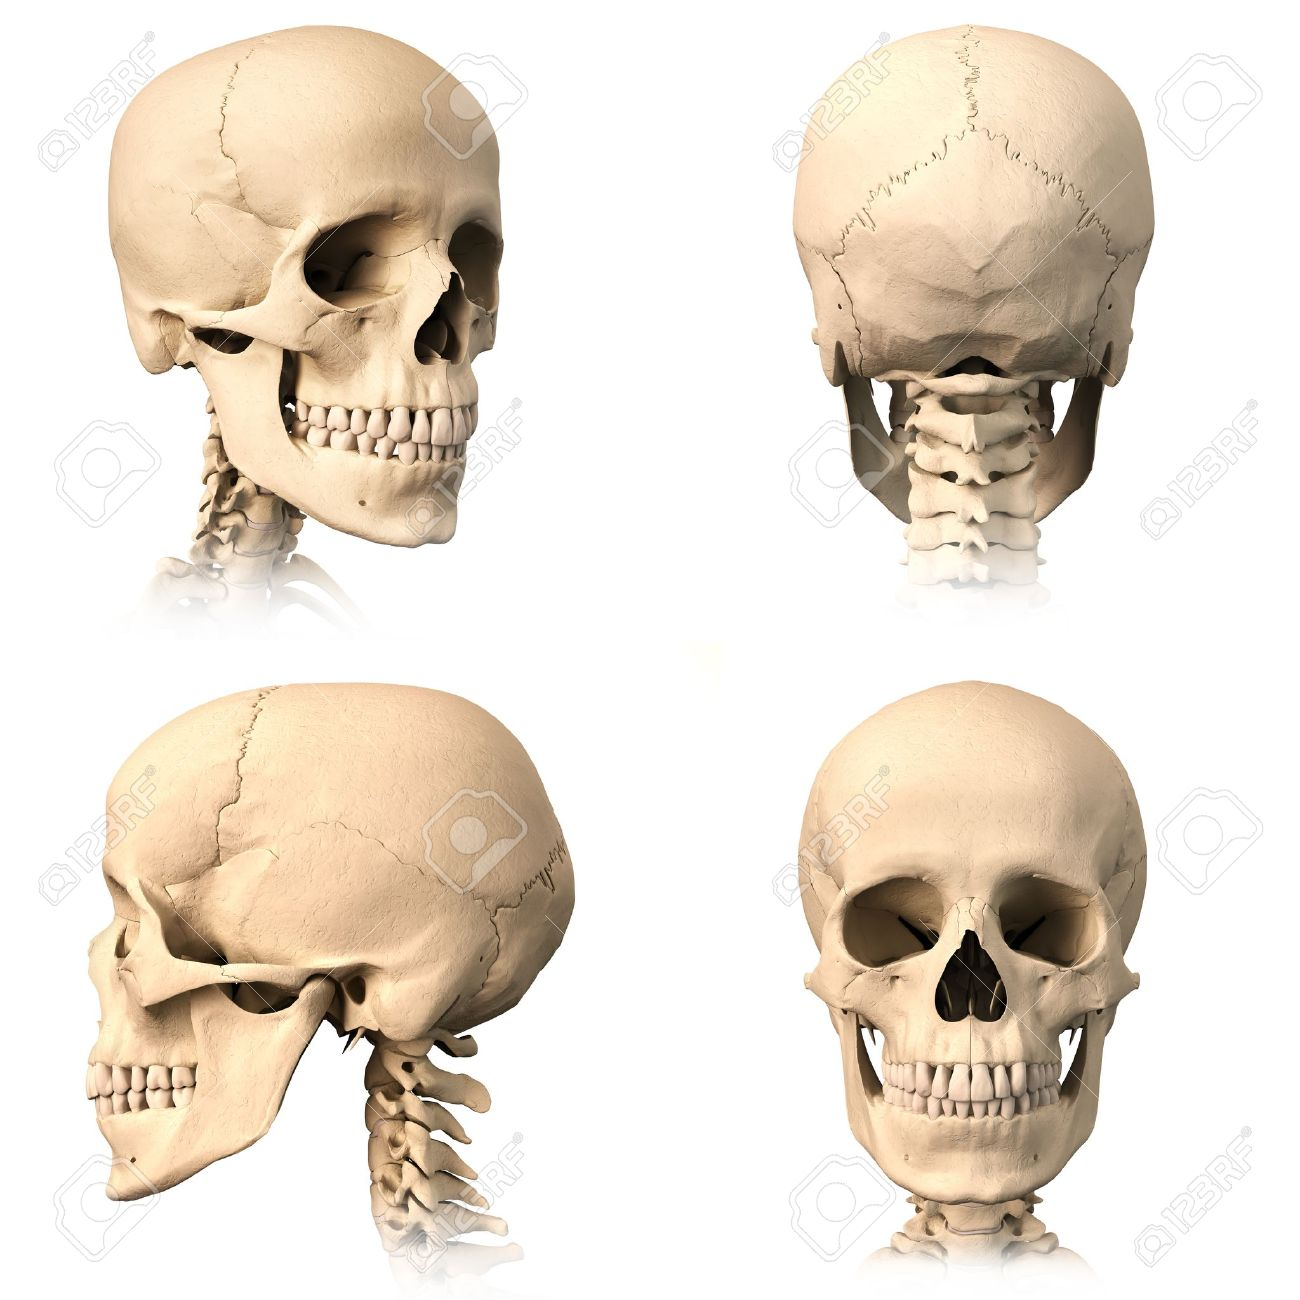 Very Detailed And Scientifically Correct Human Skull Three